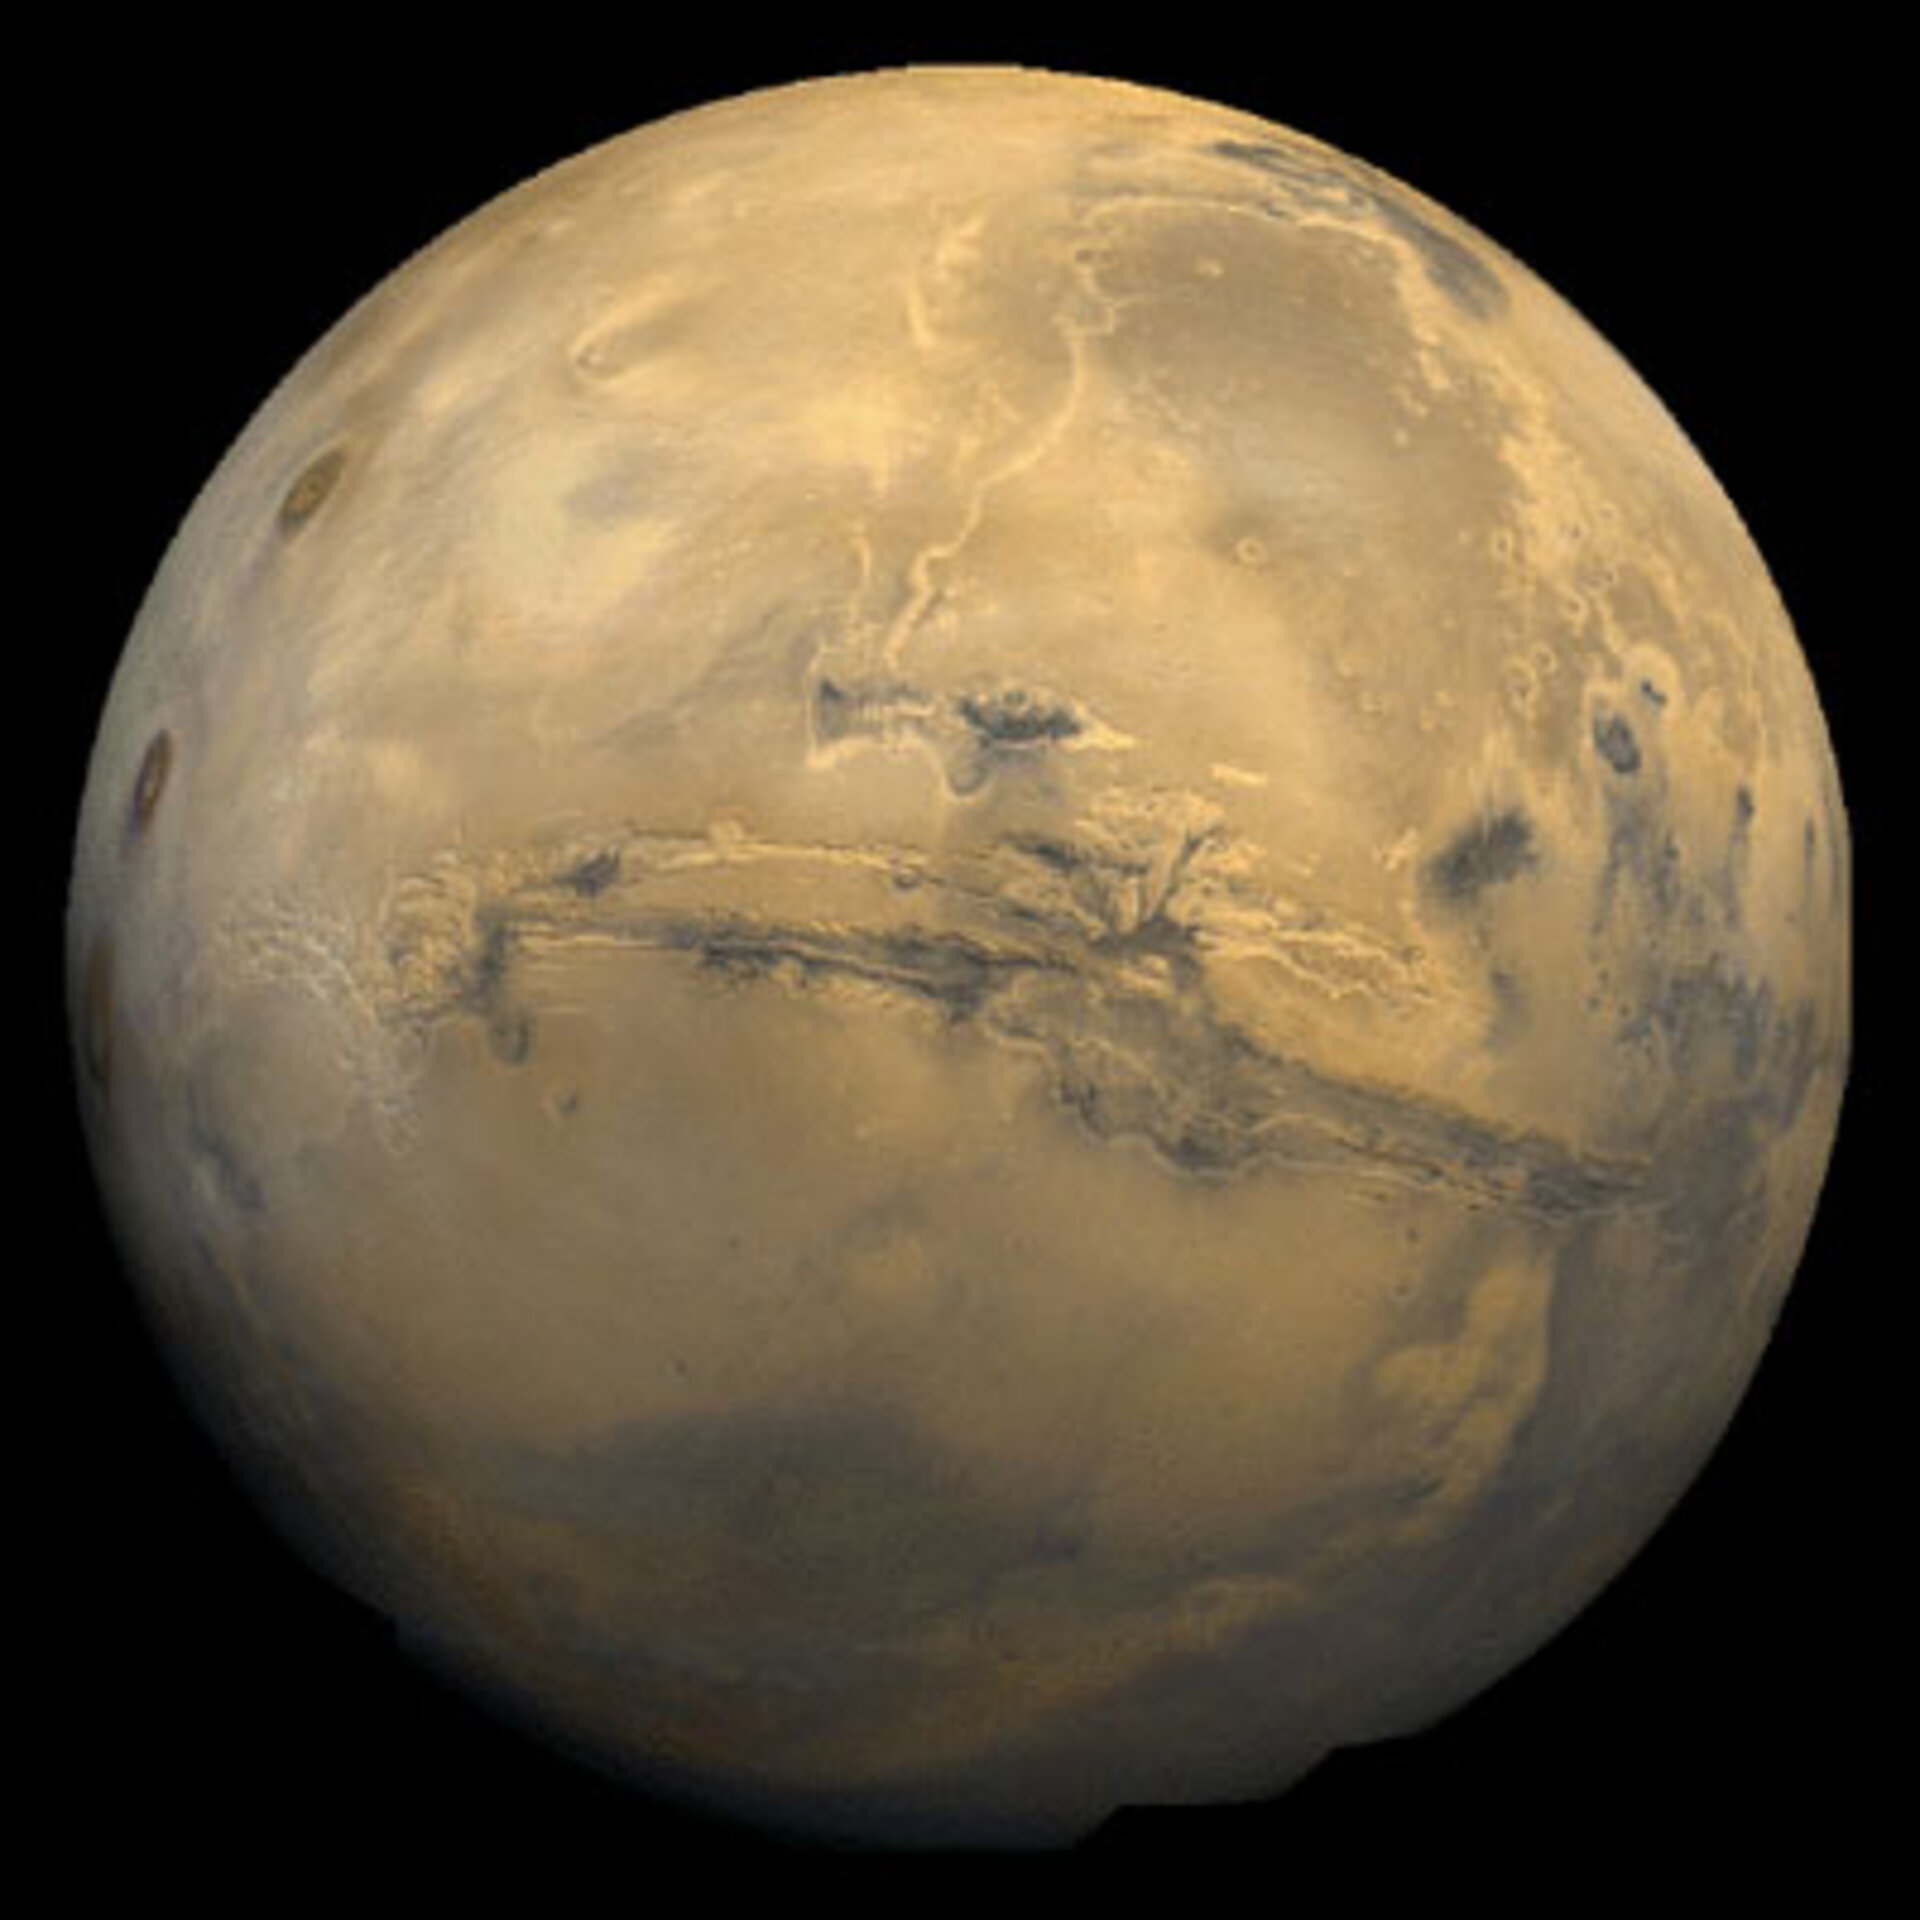 The Valles Marineris hemisphere of Mars